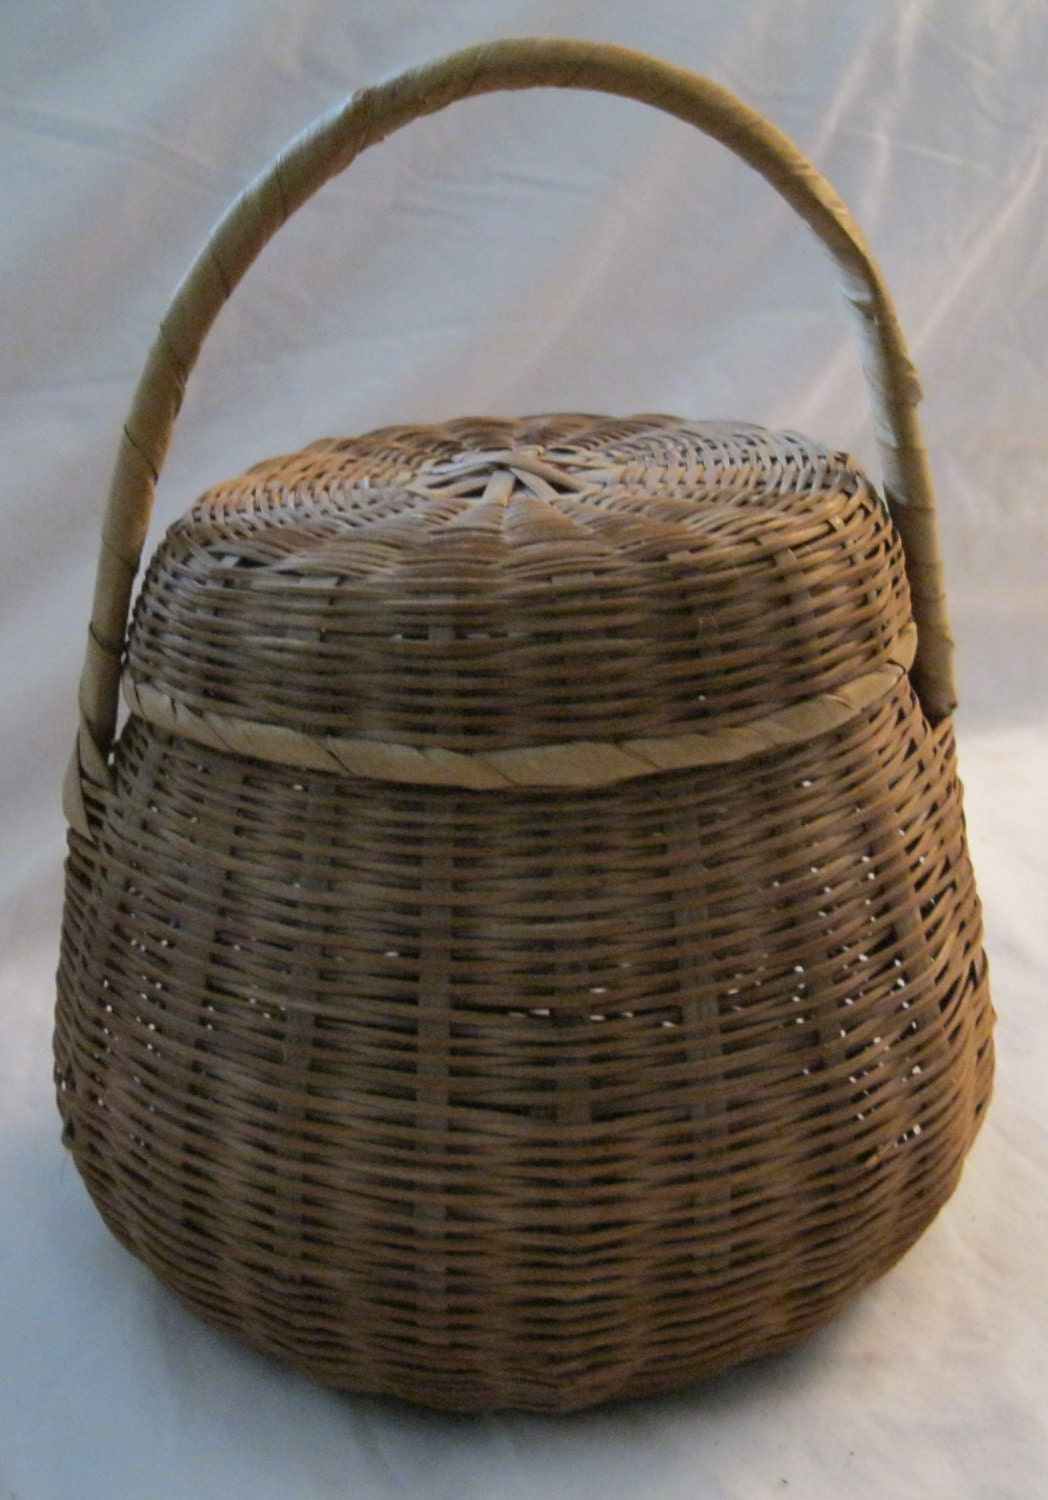 Wicker Baskets With Handles And Lid : Vintage round wicker basket with lid handle by